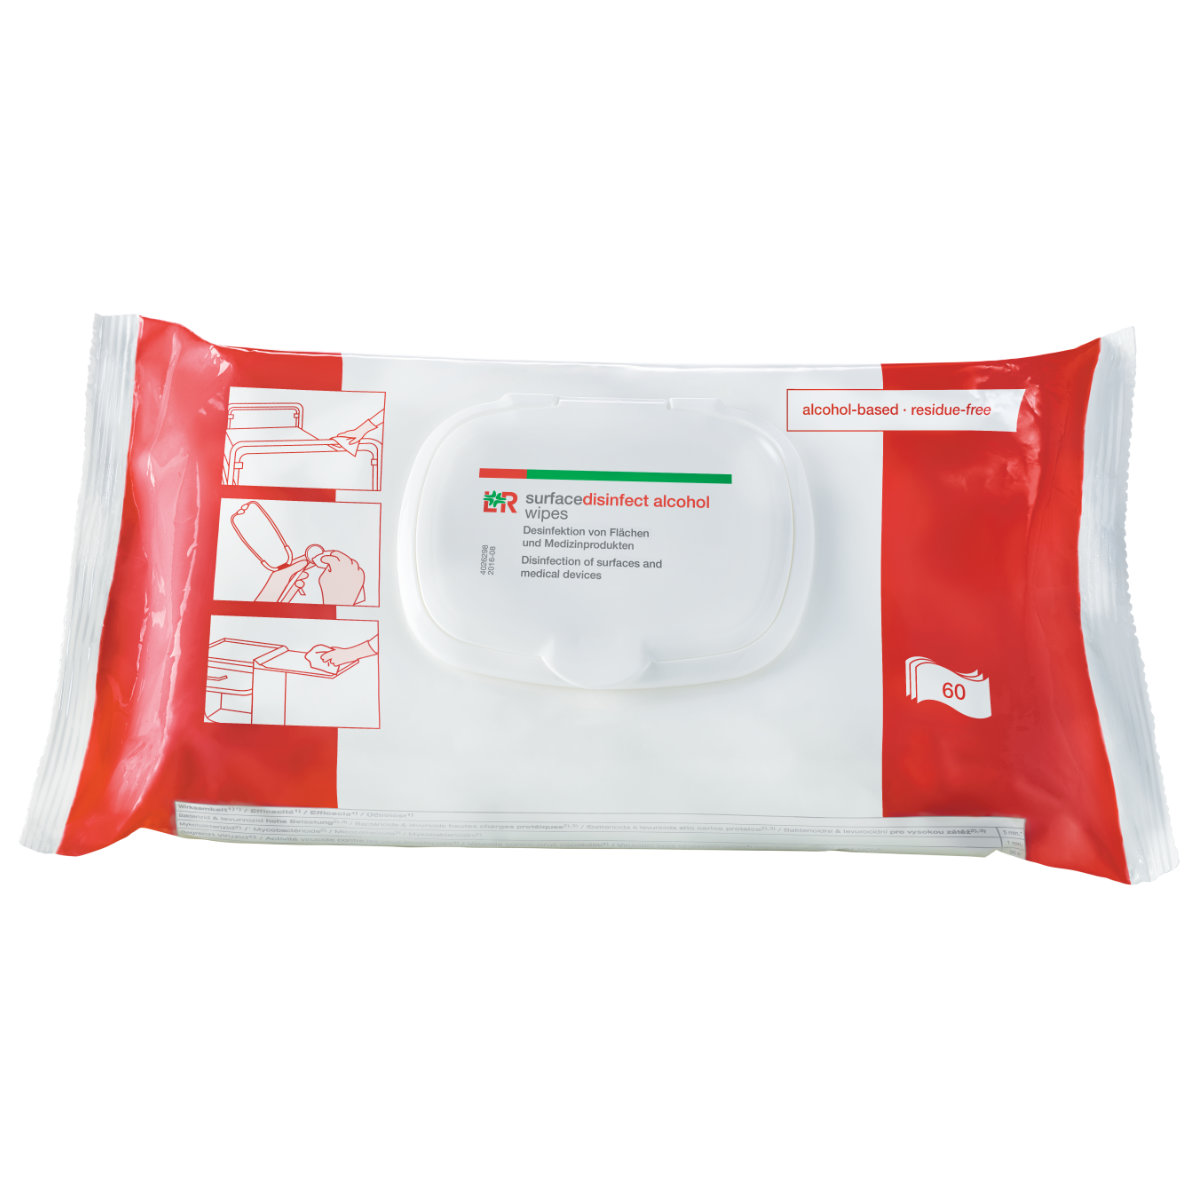 L&R surfacedisinfect alcohol wipes